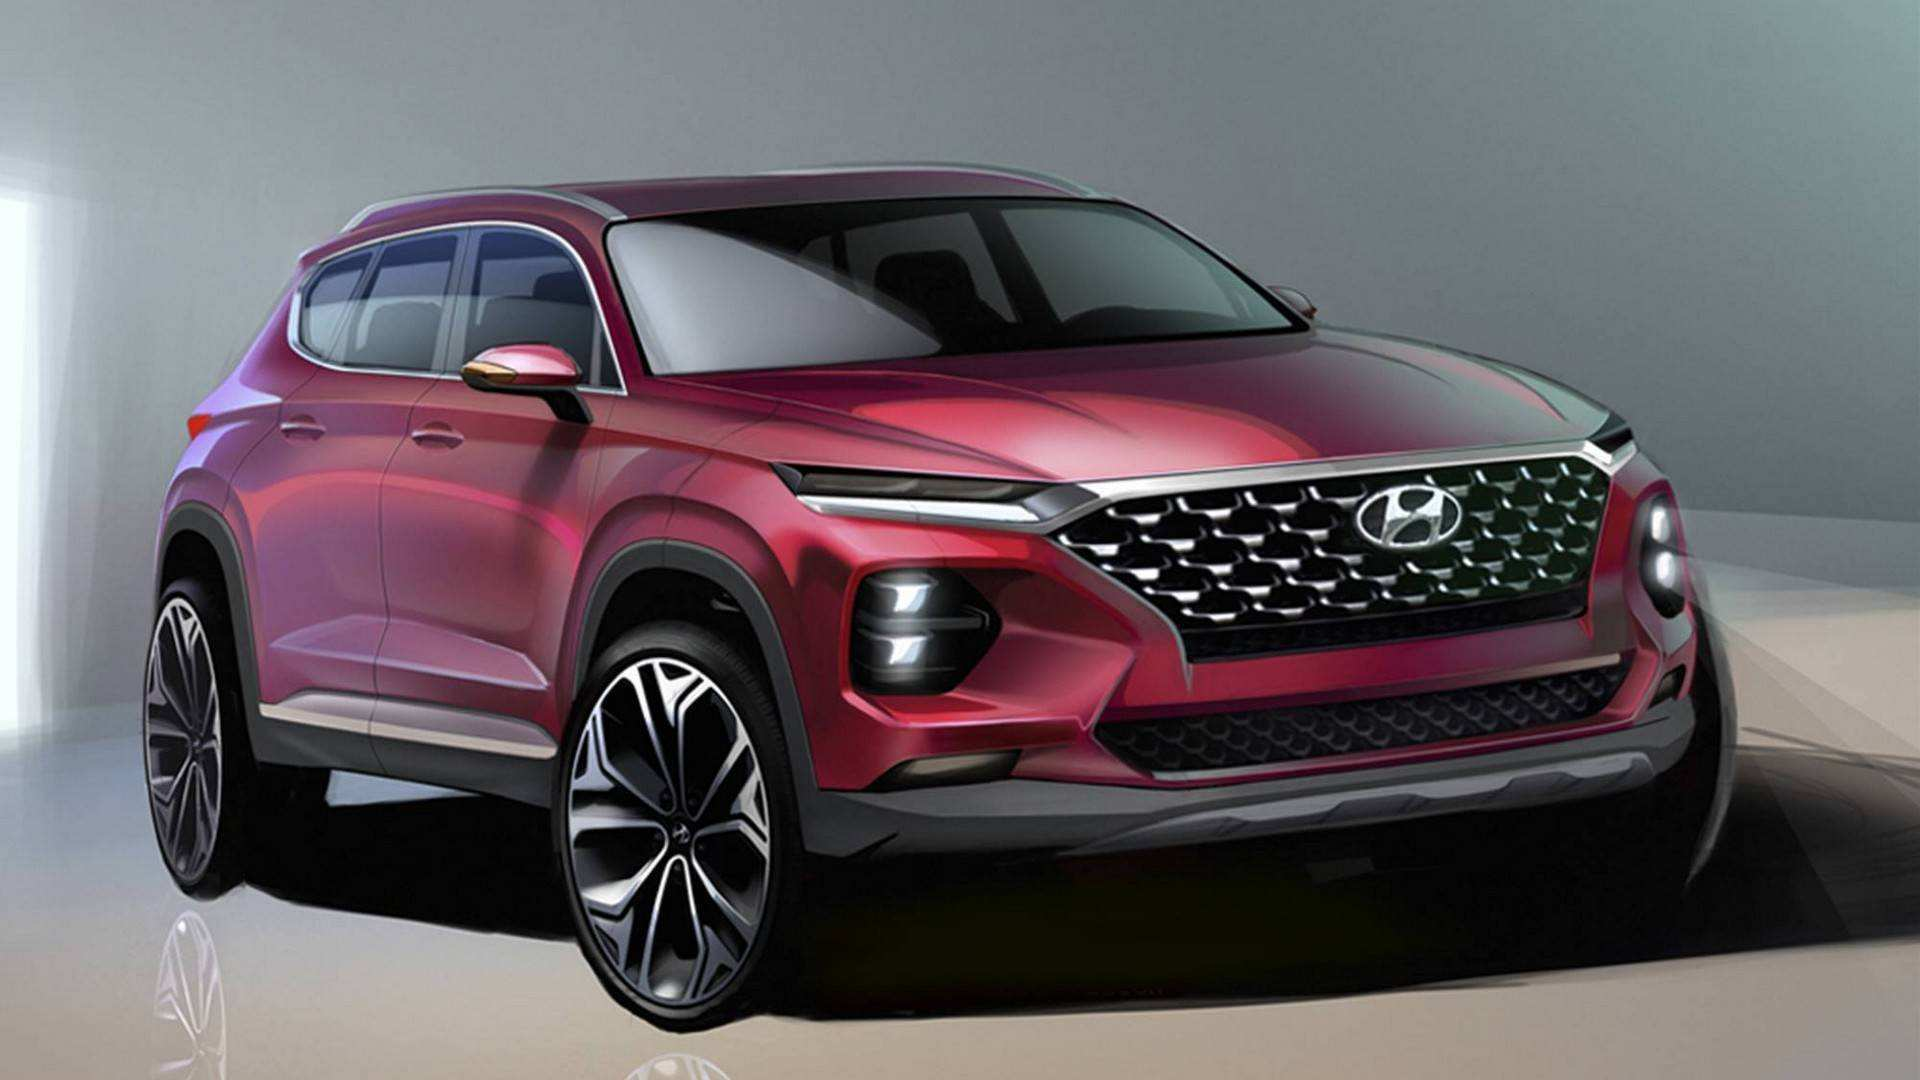 51 Concept of 2019 Hyundai Full Size Suv Exterior with 2019 Hyundai Full Size Suv